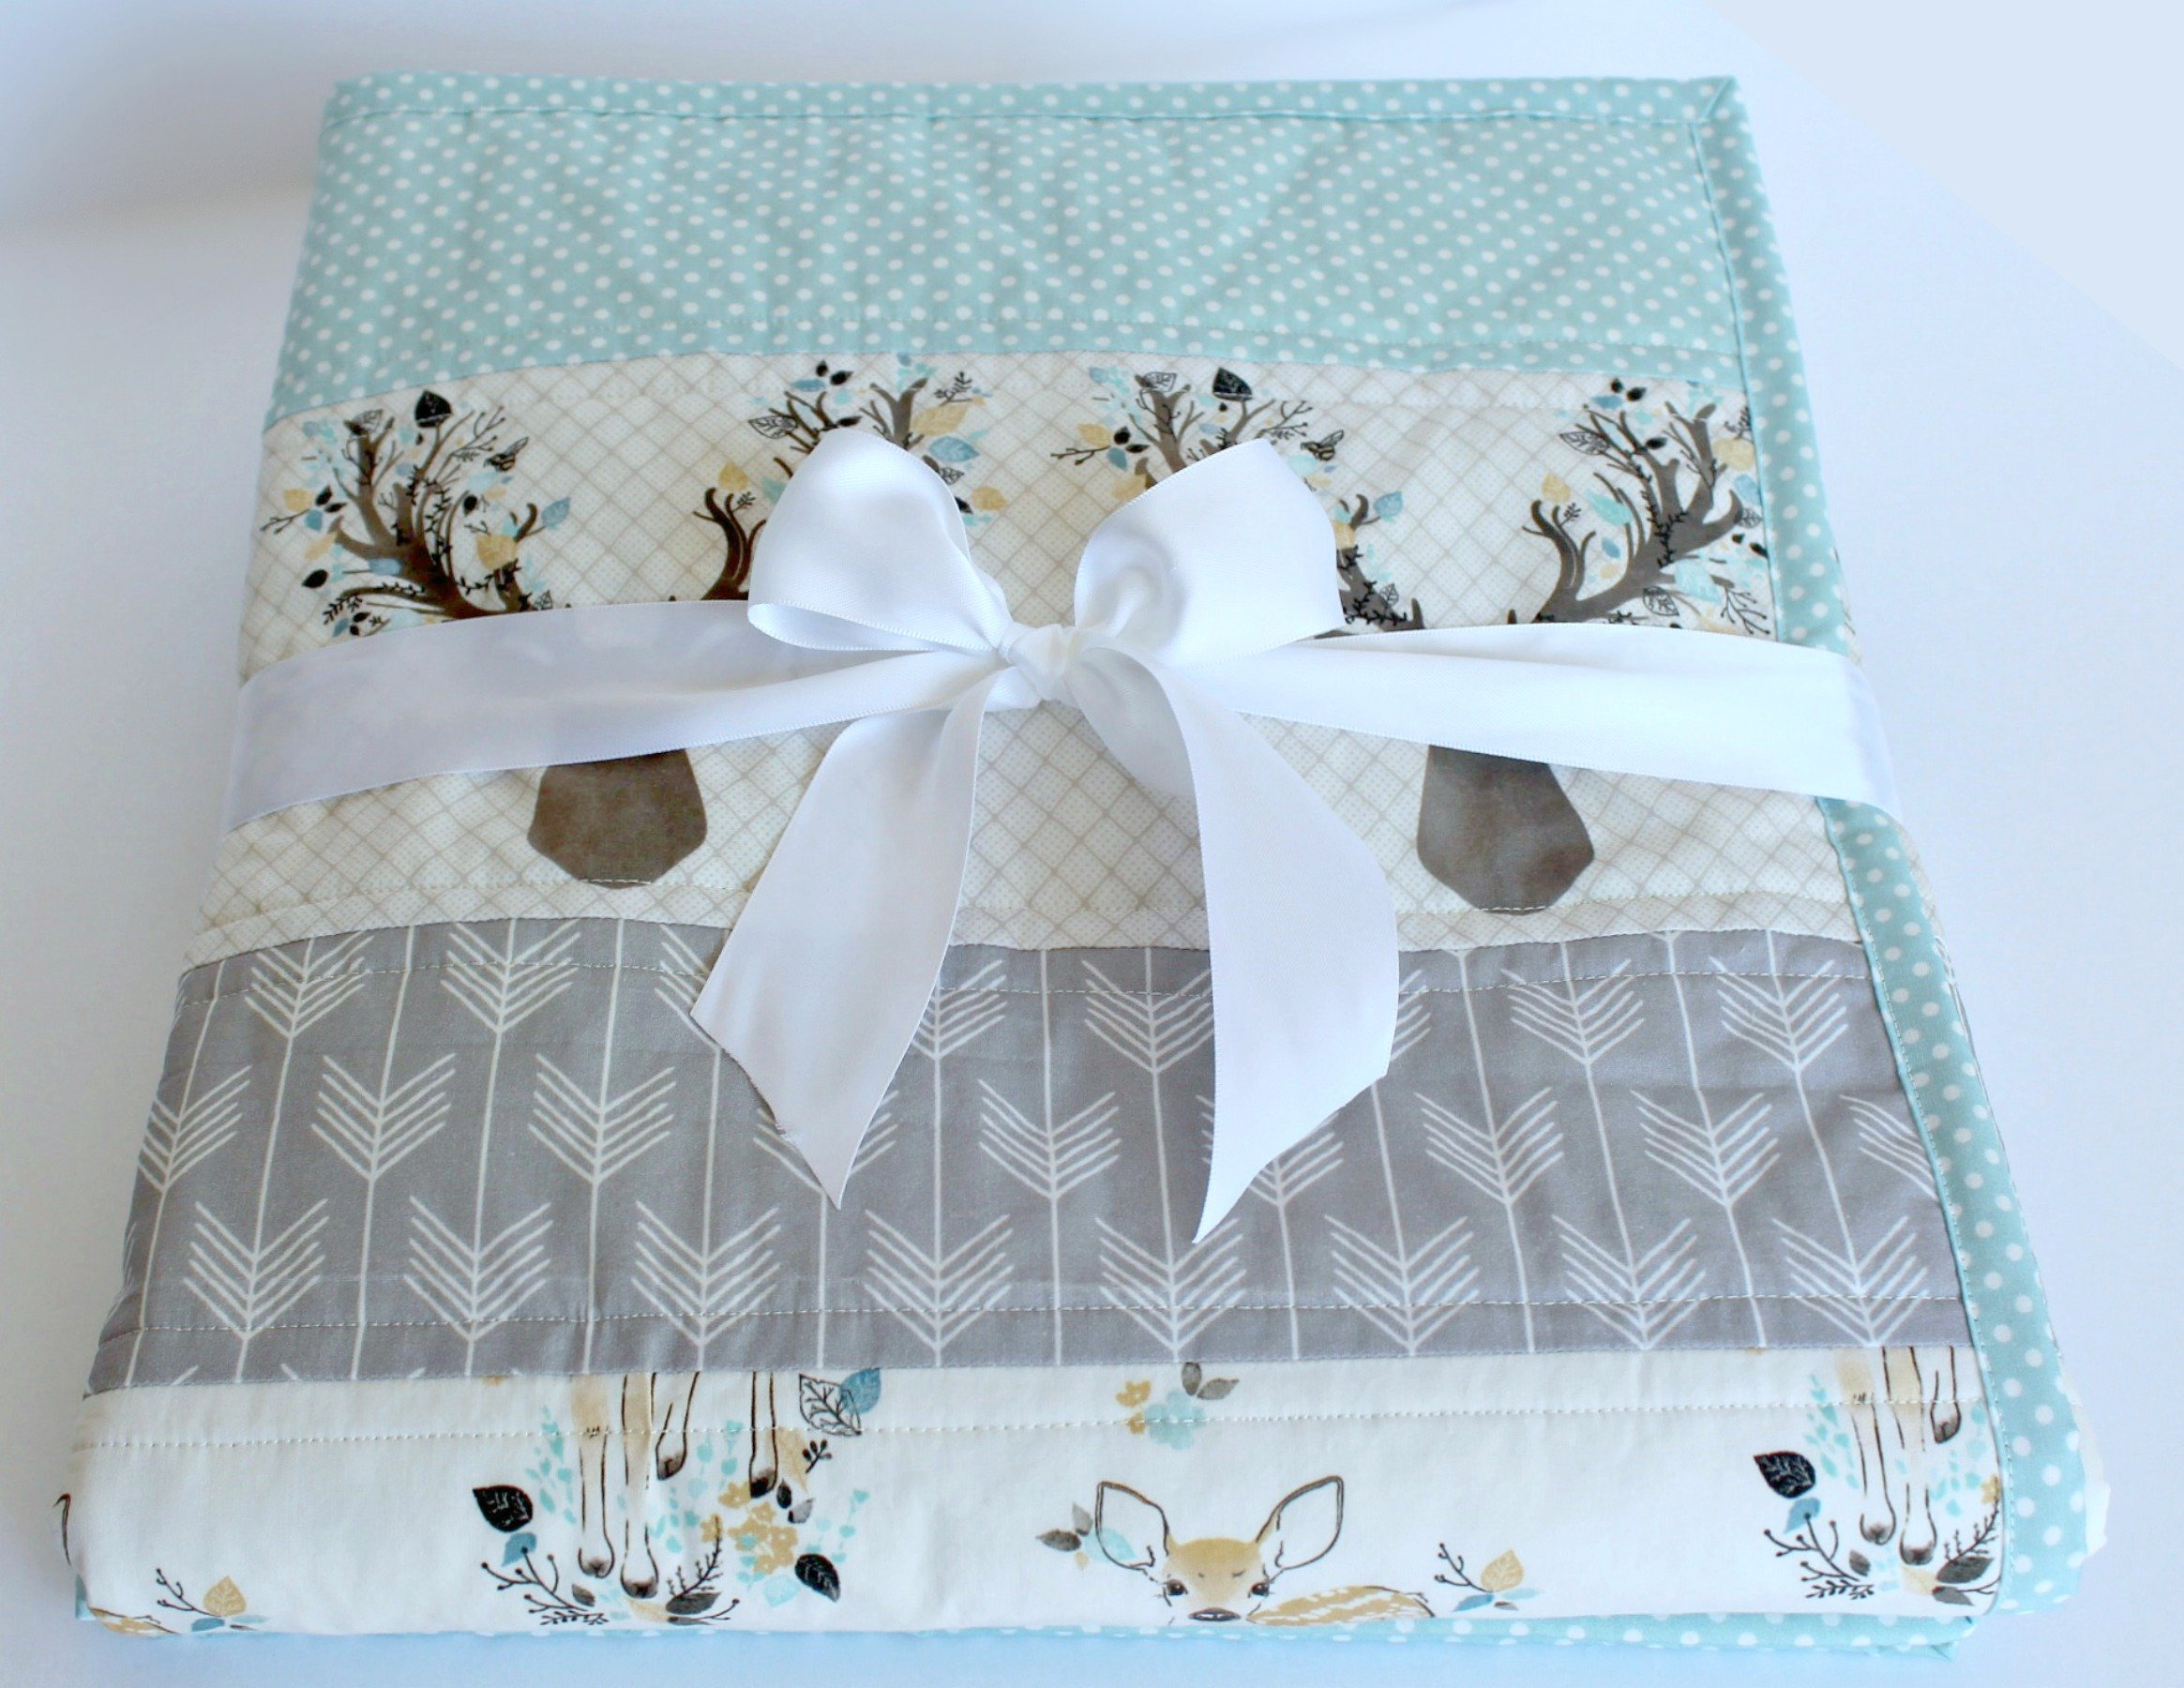 Handmade Blue & Gray Baby Quilt with Fawn, Deer, & Arrows.